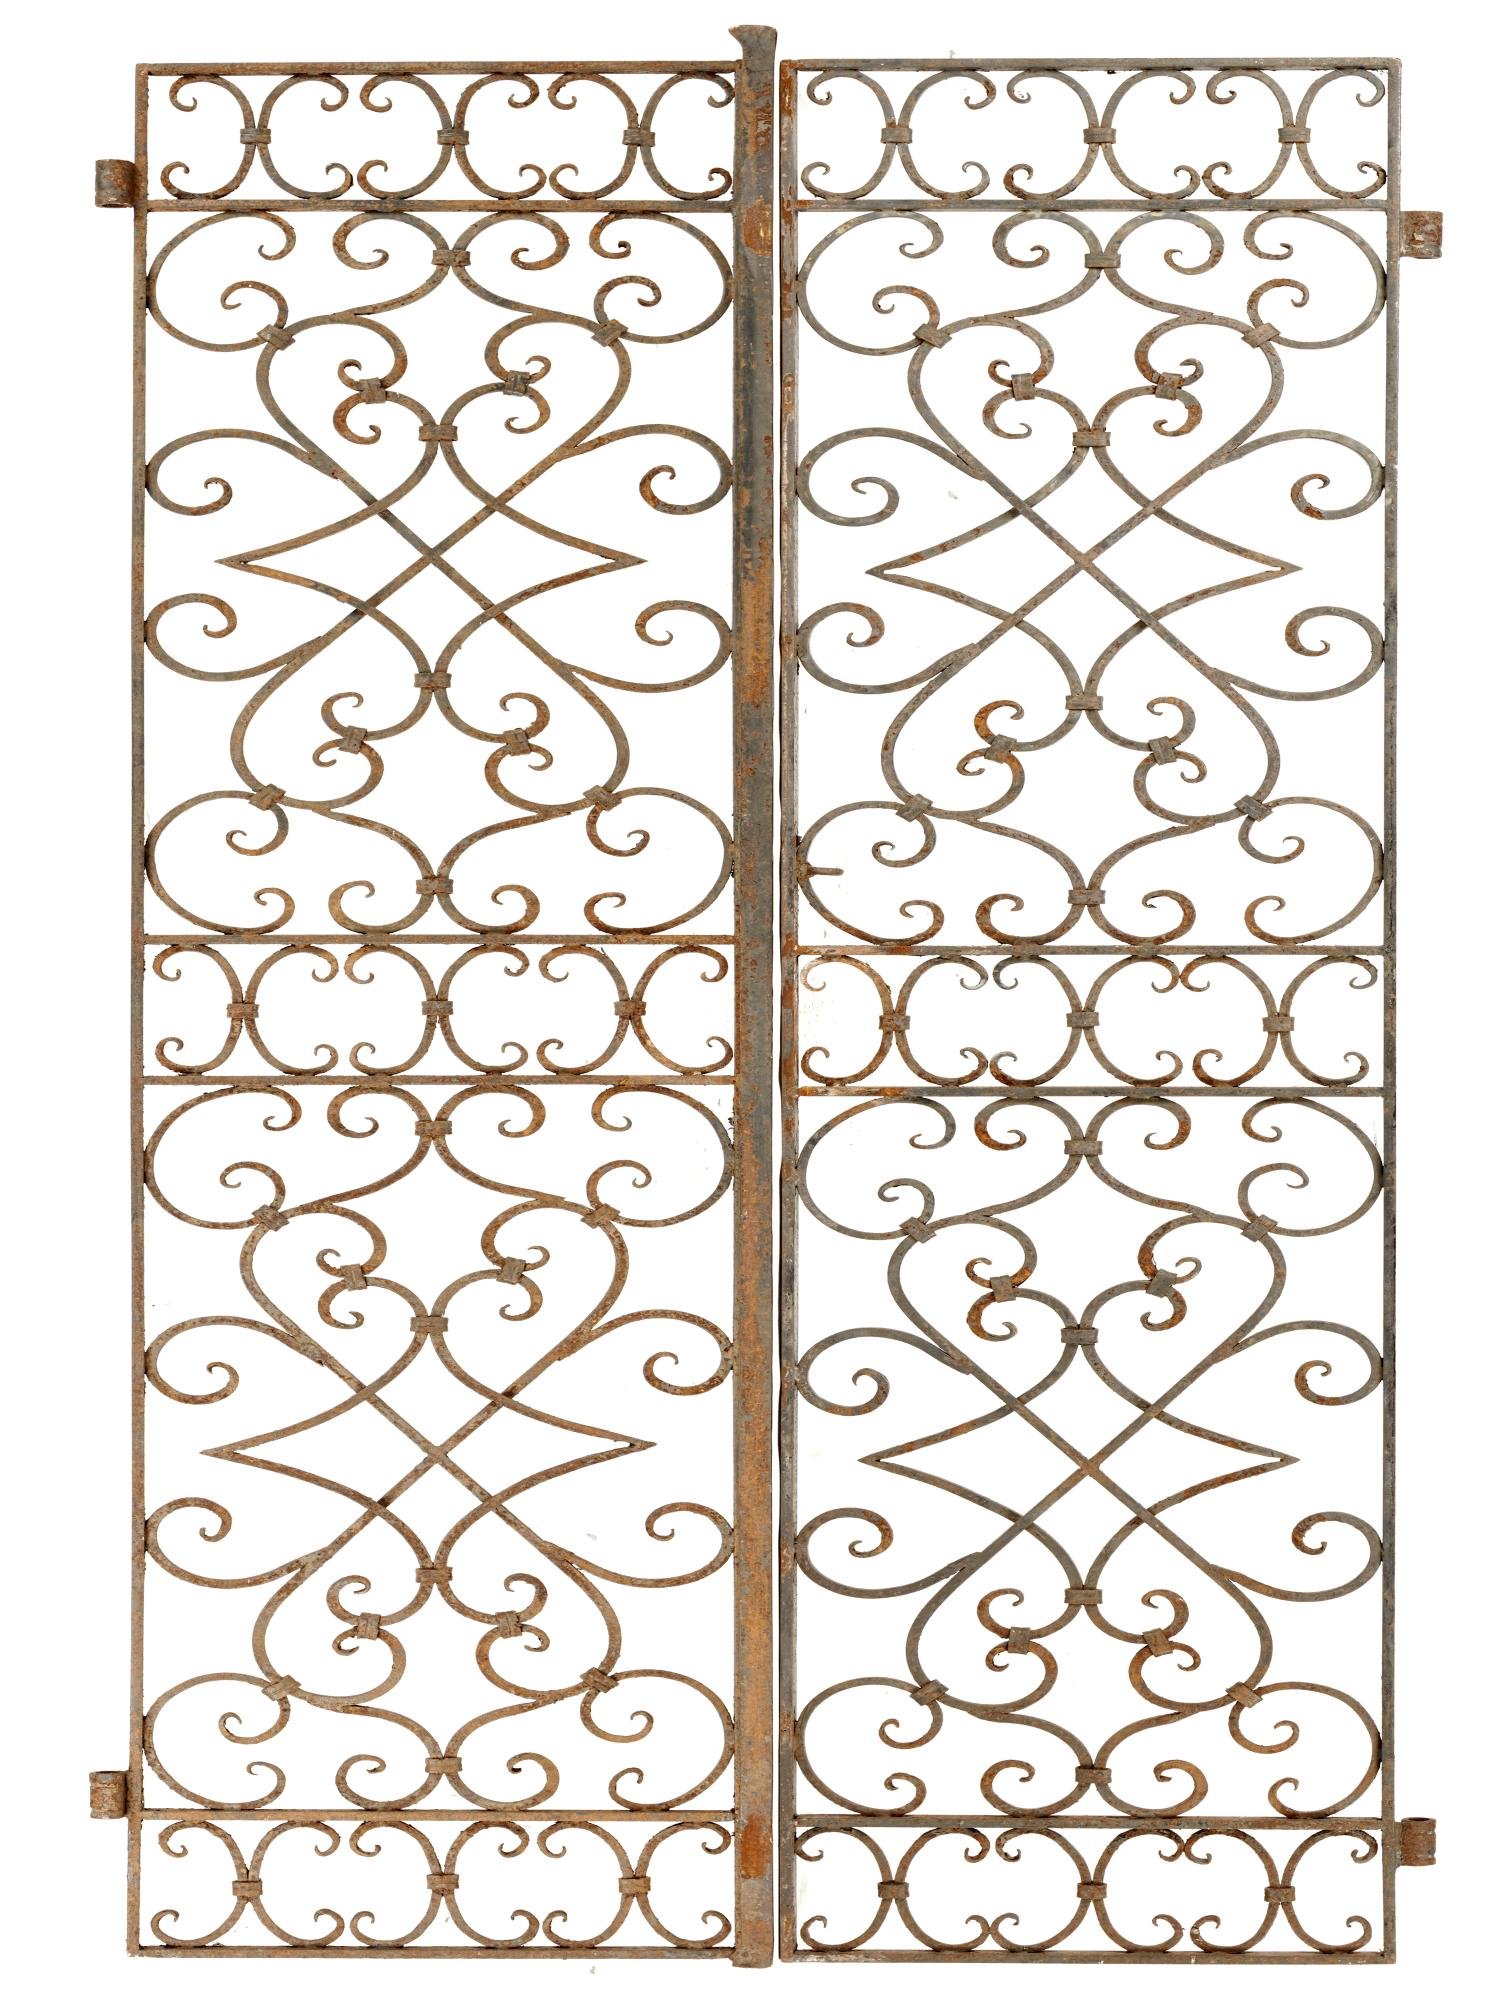 Lot 204 - Gates: A pair of wrought iron Georgian-style pedestrian gates, 19th century, 213cm high by 102cm